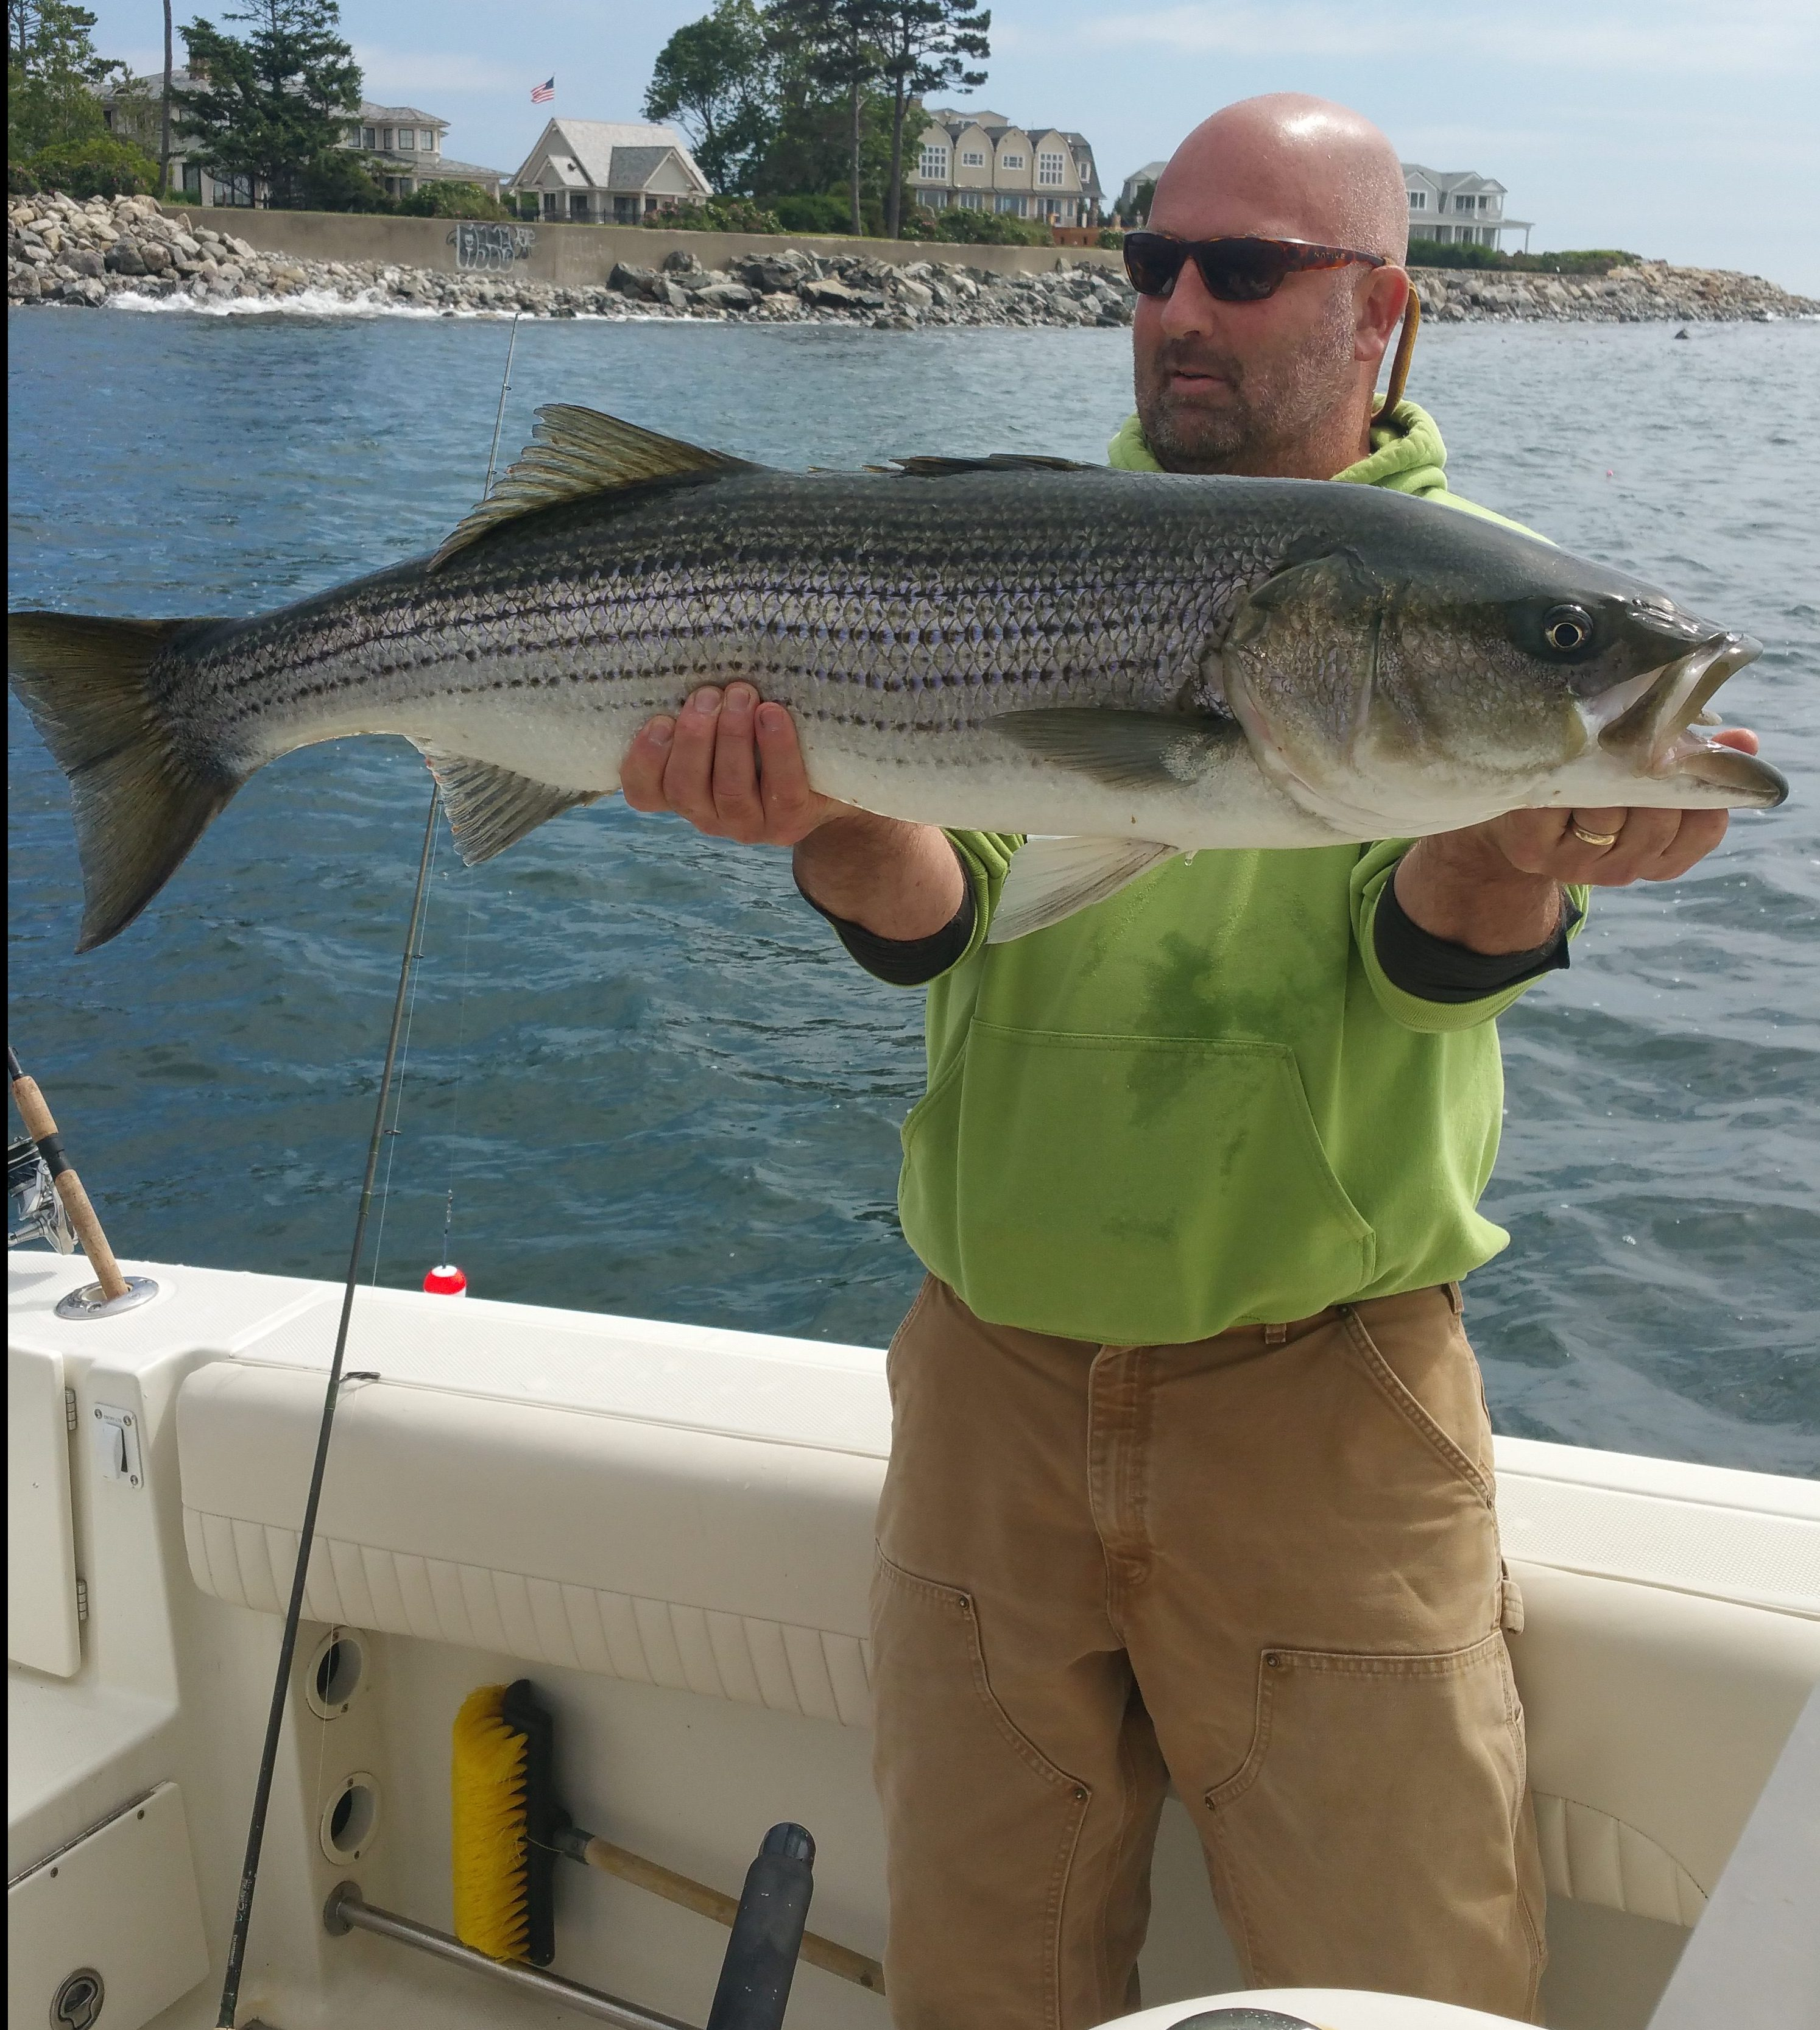 New Hampshire and Maine Fishing Report - June 28, 2018 - On